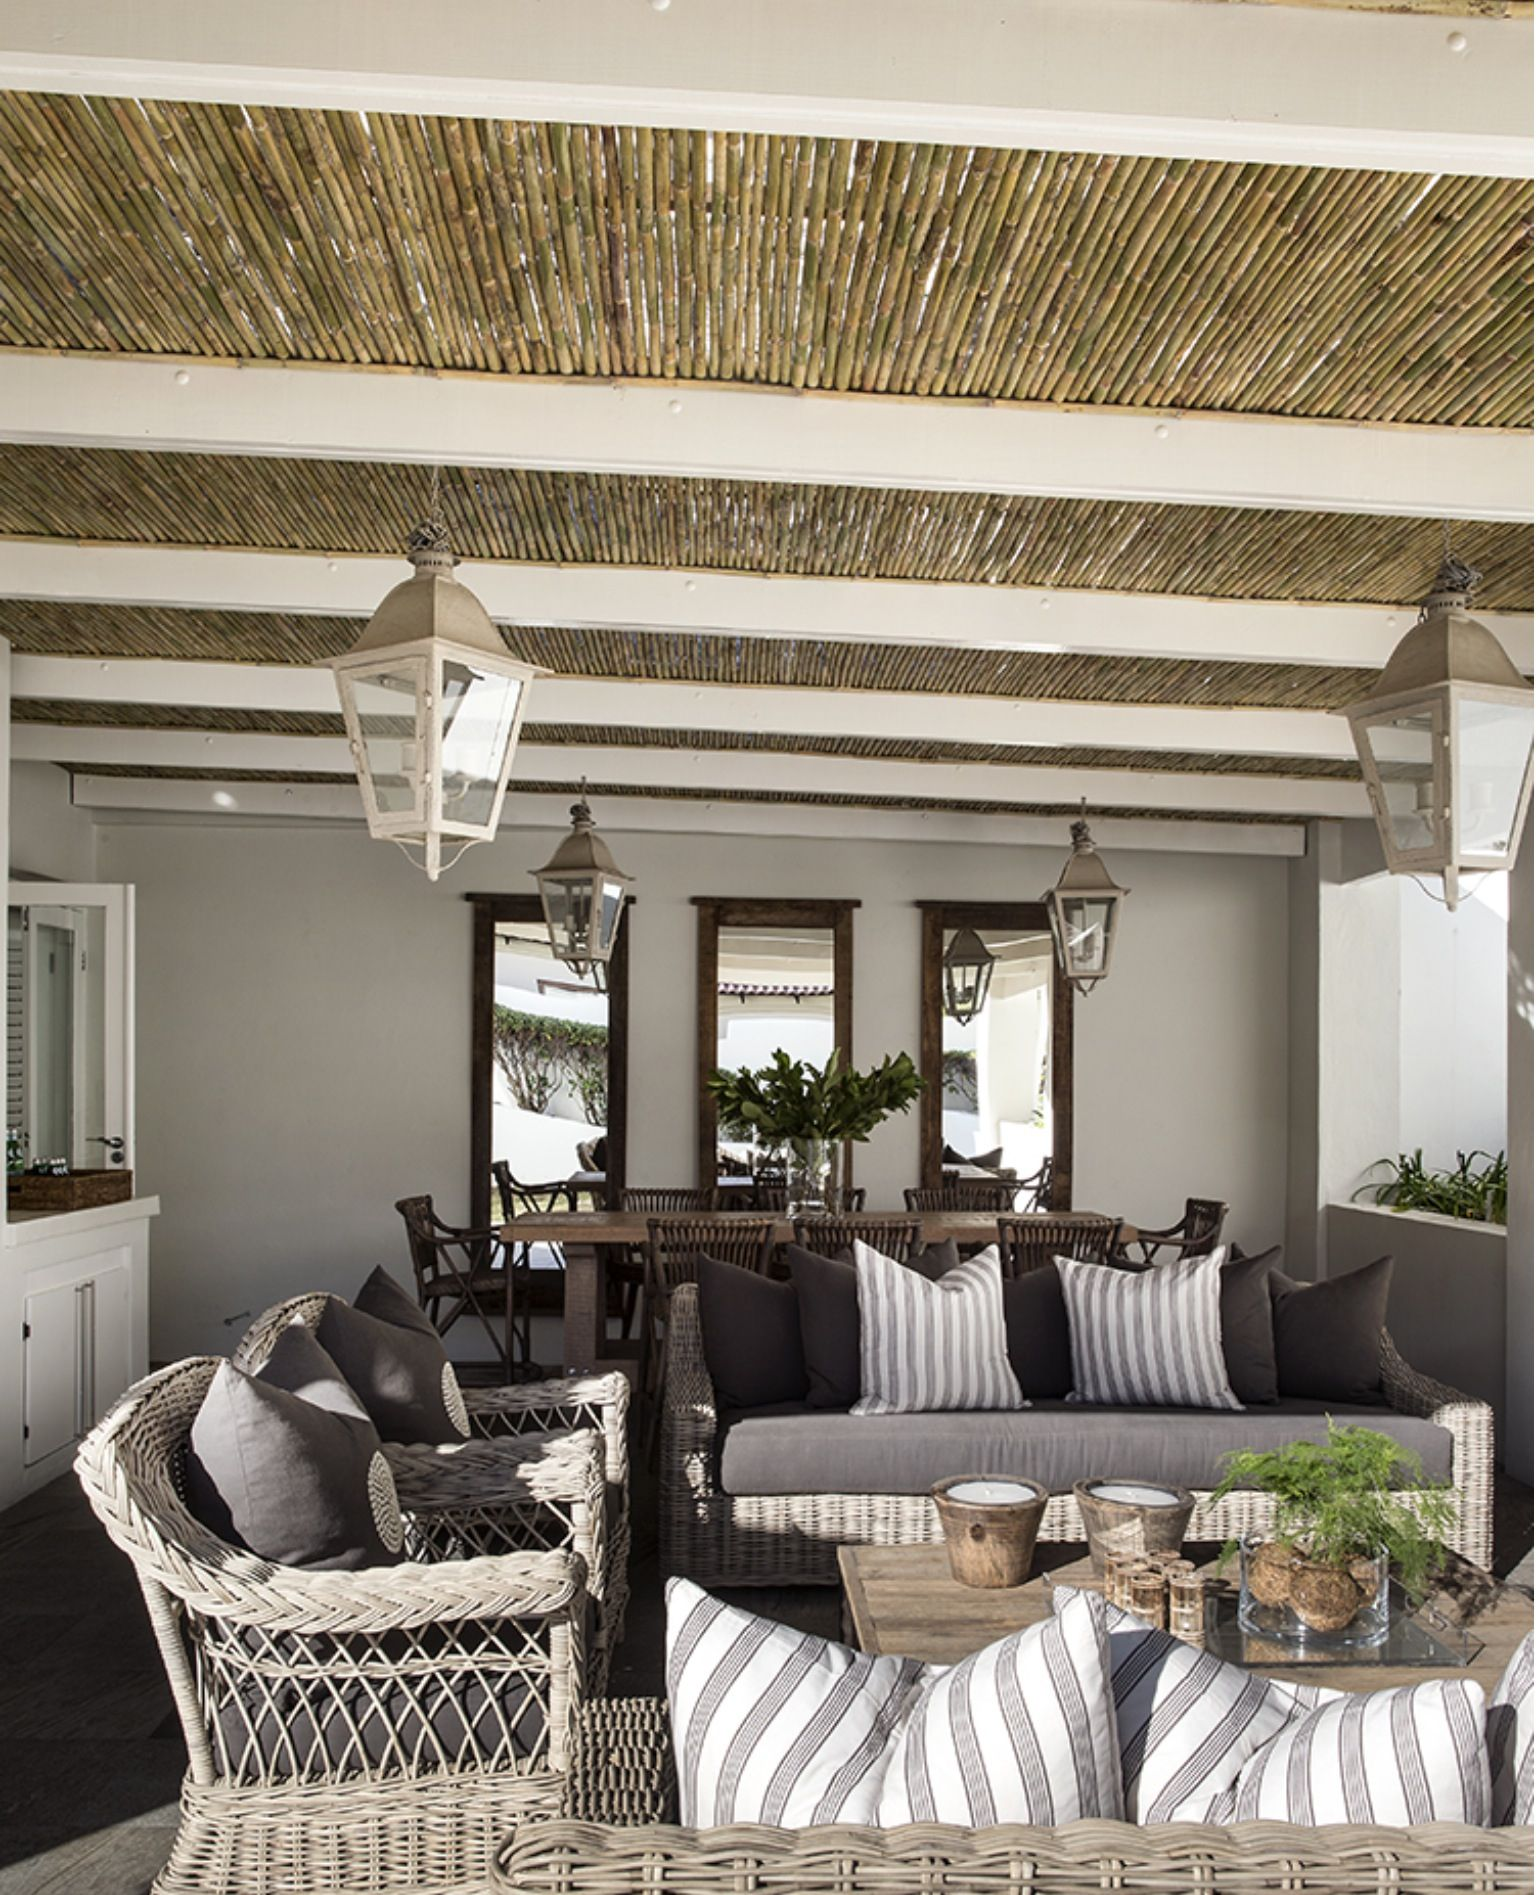 Yvonne 'brien Int - Bamboo Ceiling Outdoor Spaces